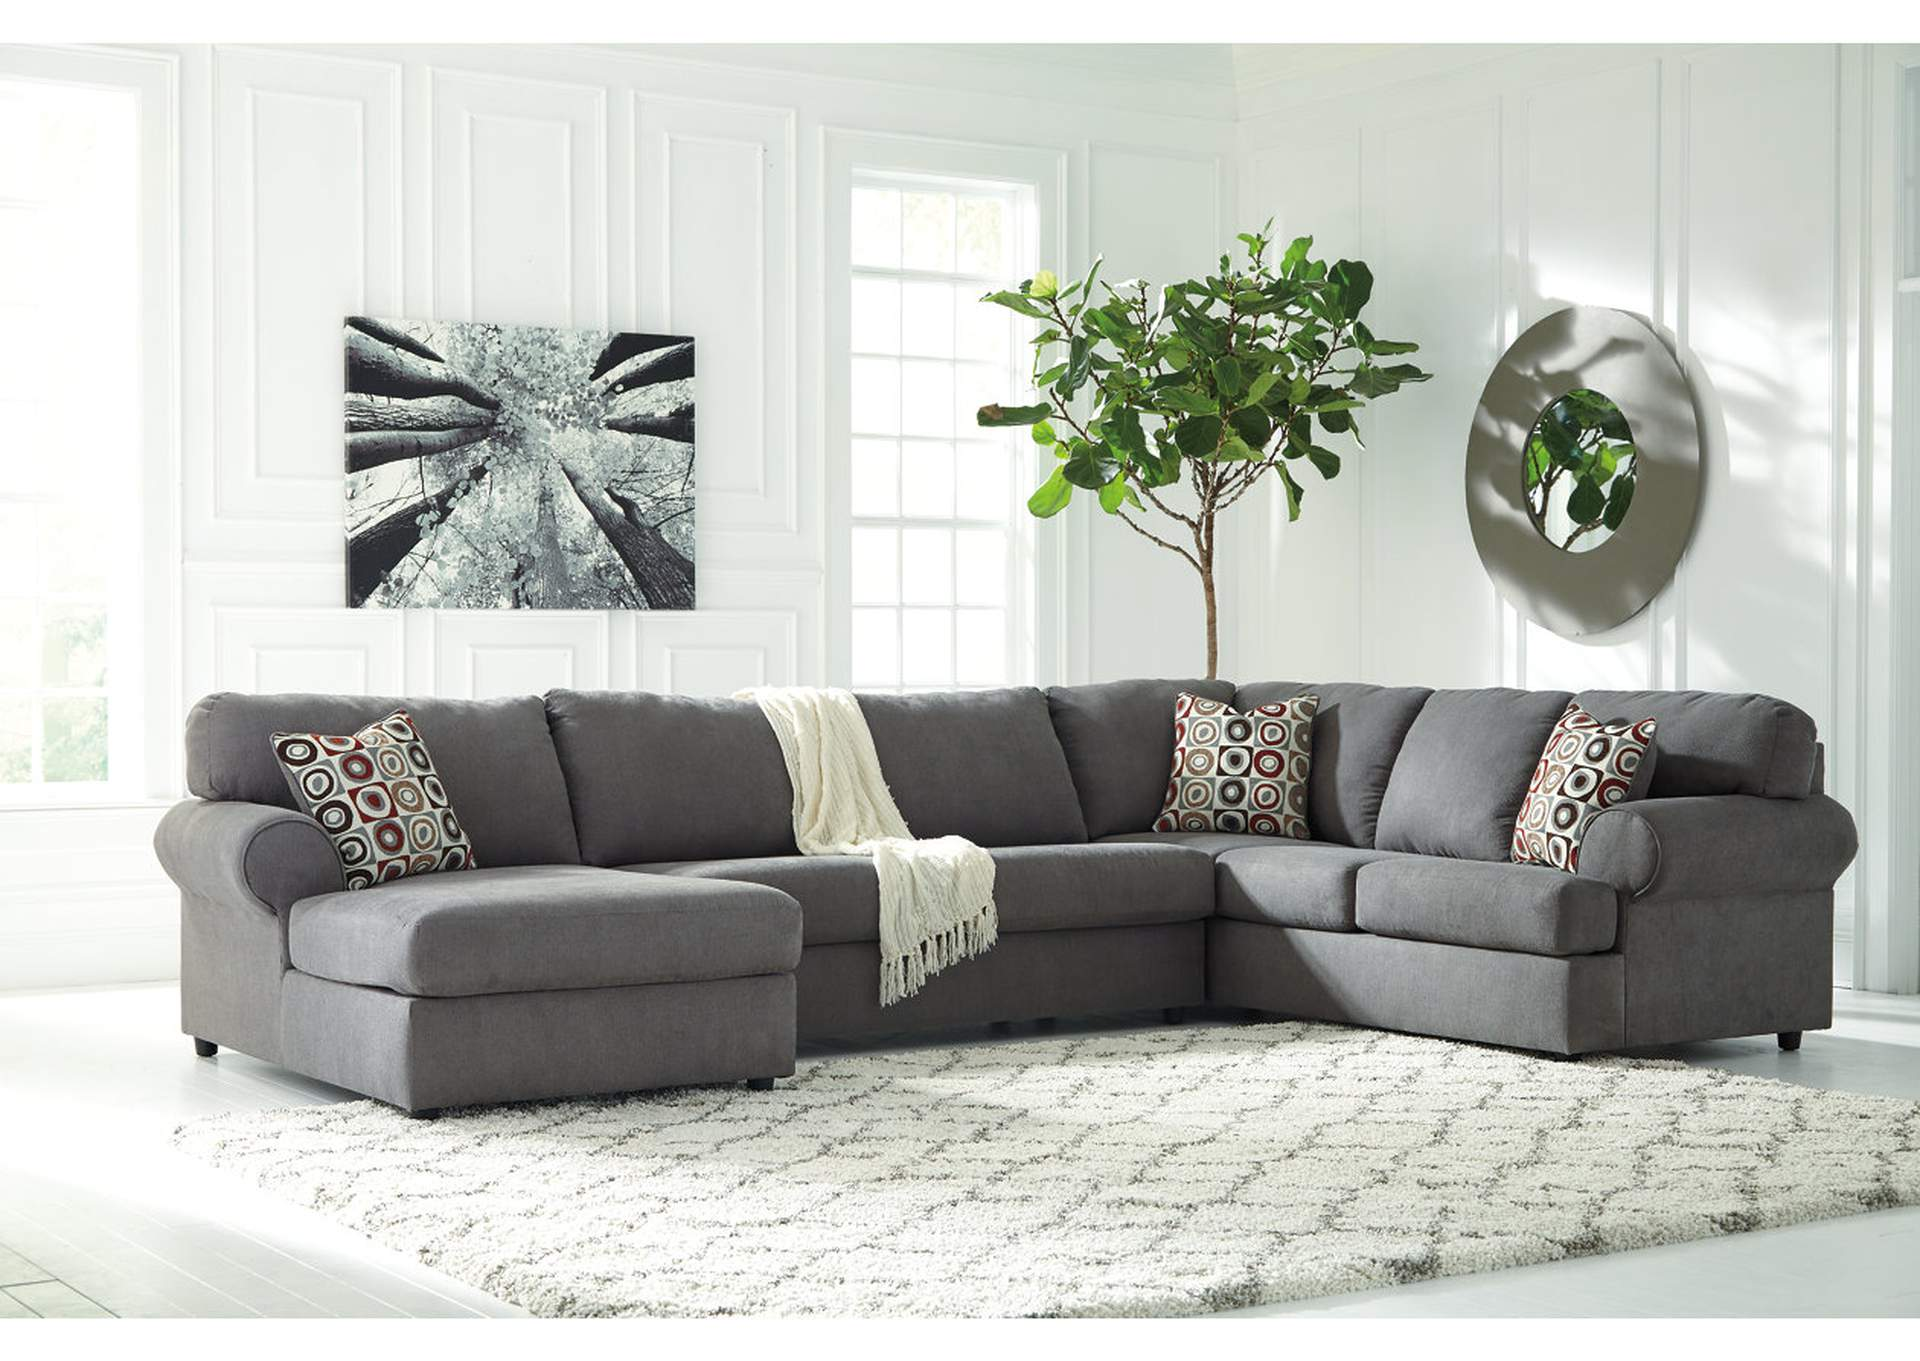 Jayceon Steel Left Facing Chaise End Sectional,Signature Design By Ashley